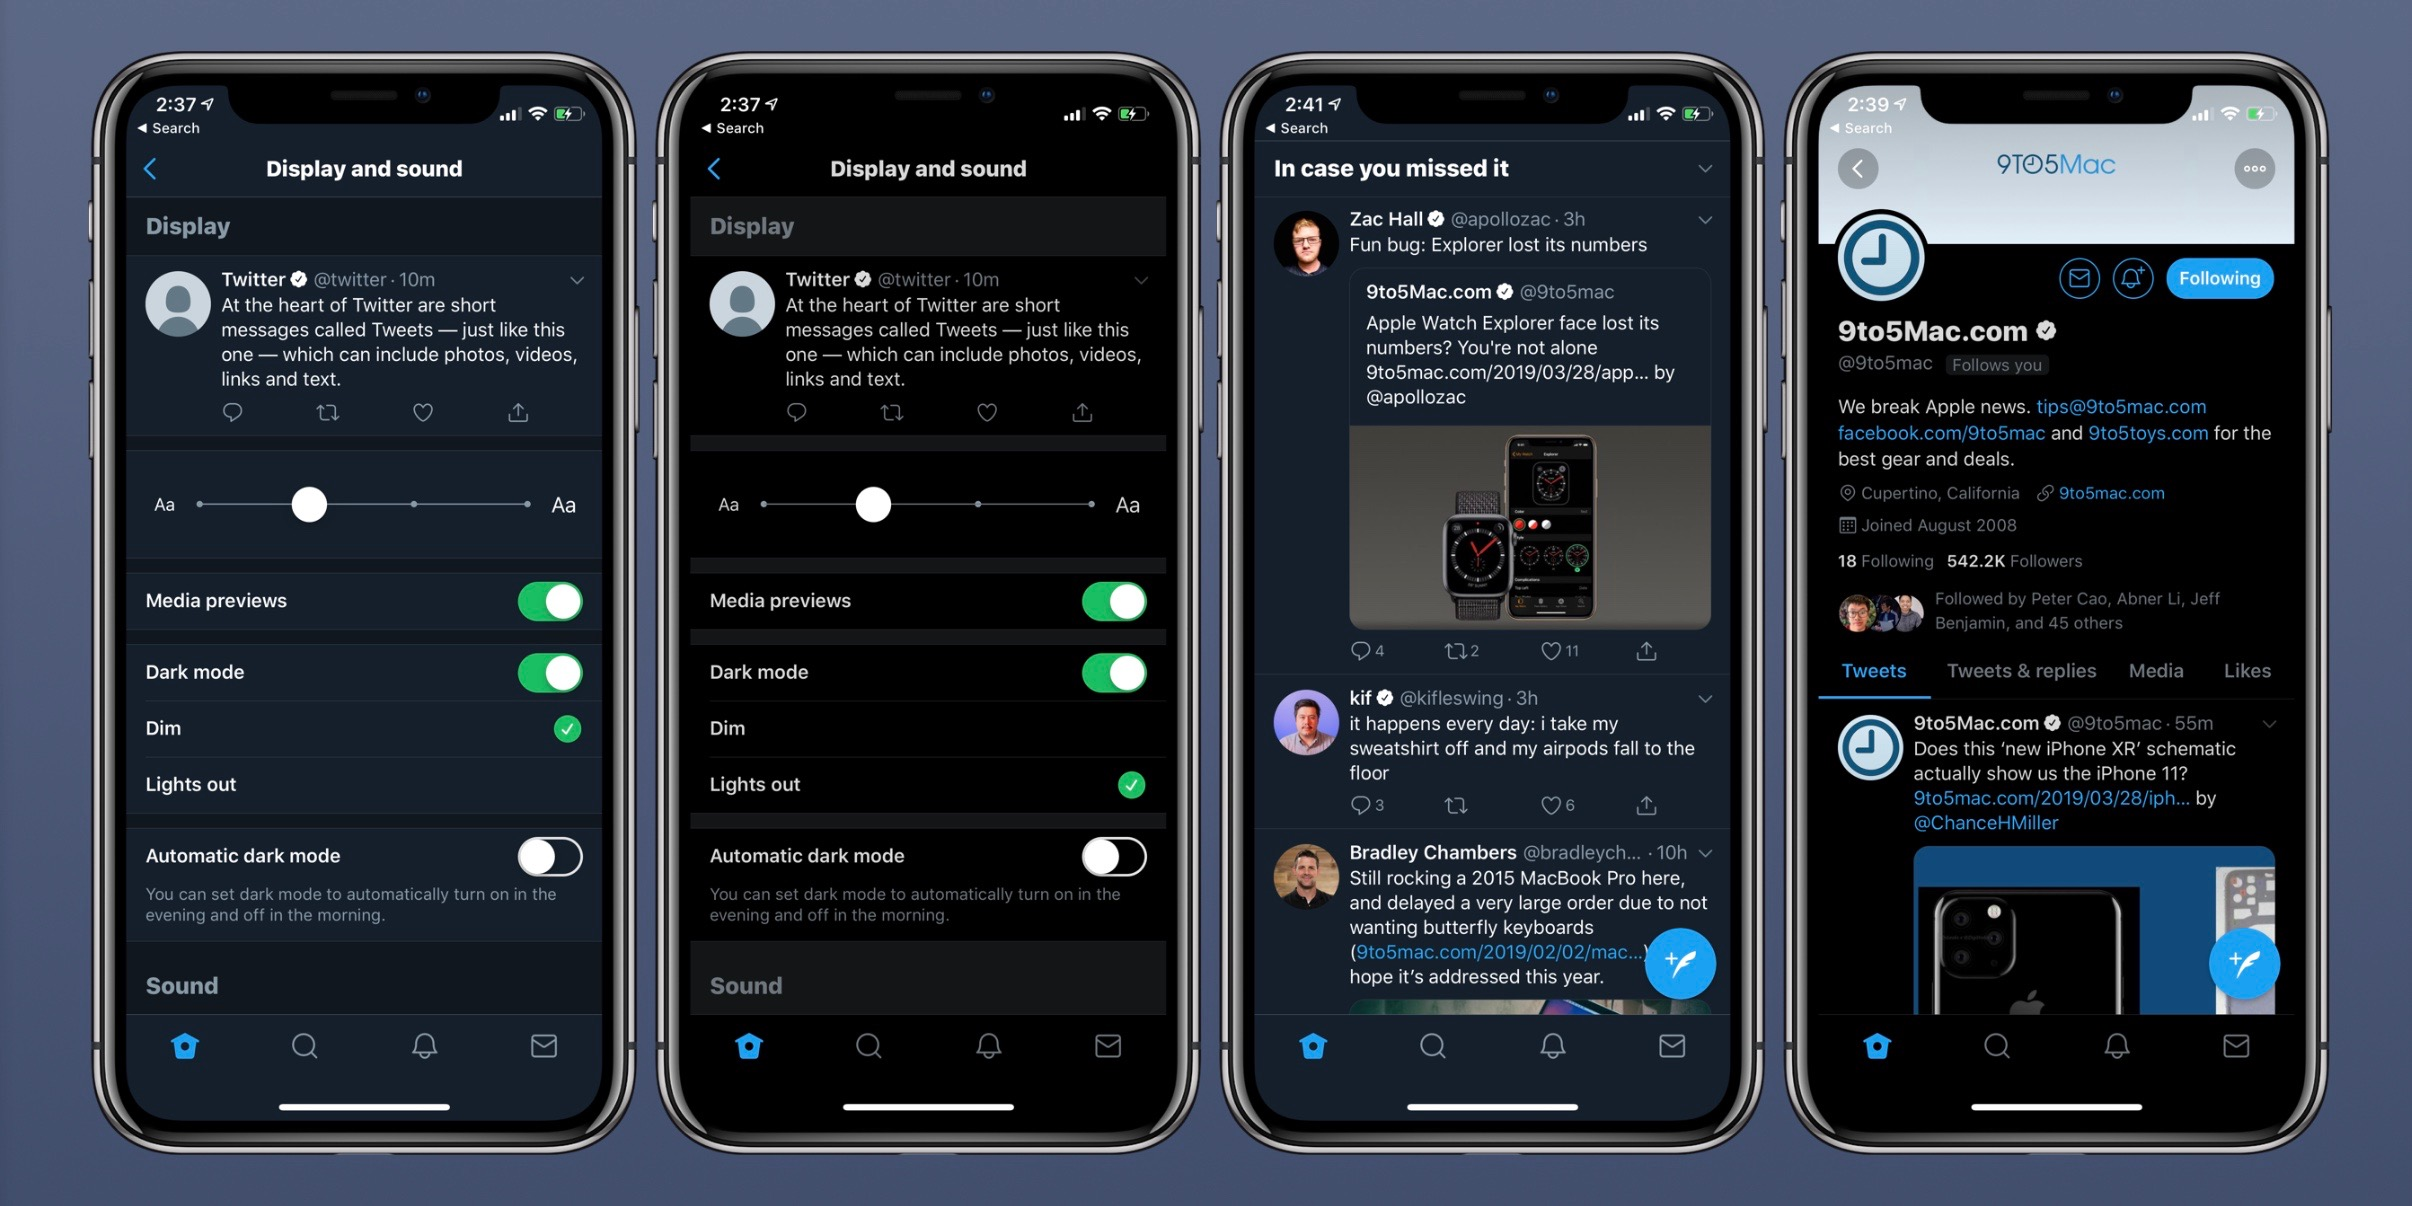 How to use Twitter's automatic and black dark modes on